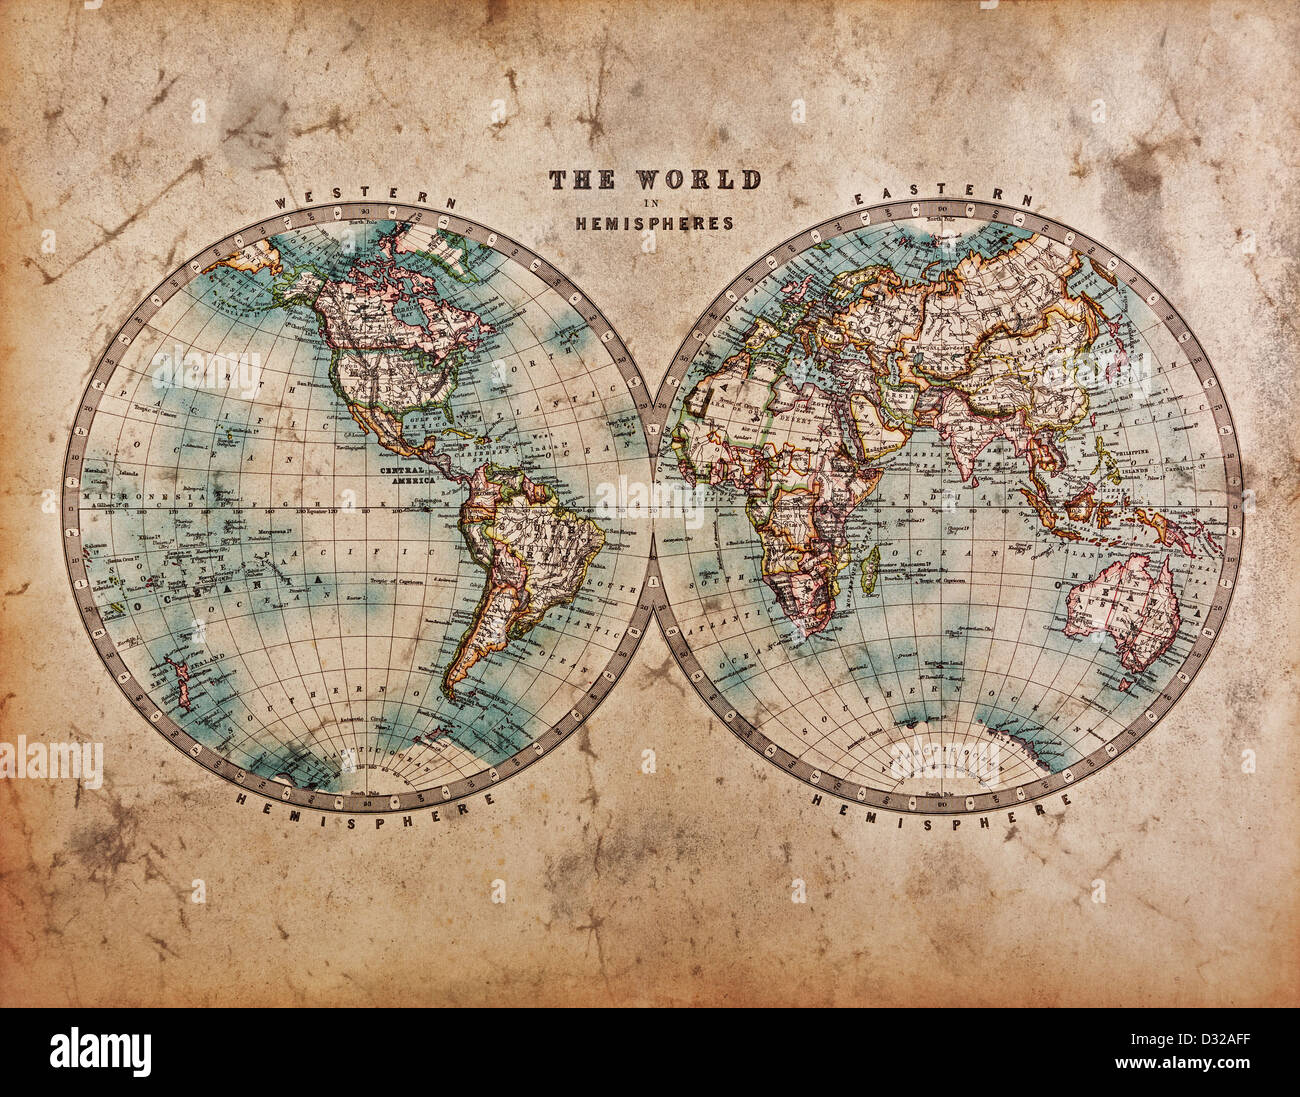 A genuine old stained World map dated from the mid 1800's showing Western and Eastern Hemispheres with hand - Stock Image